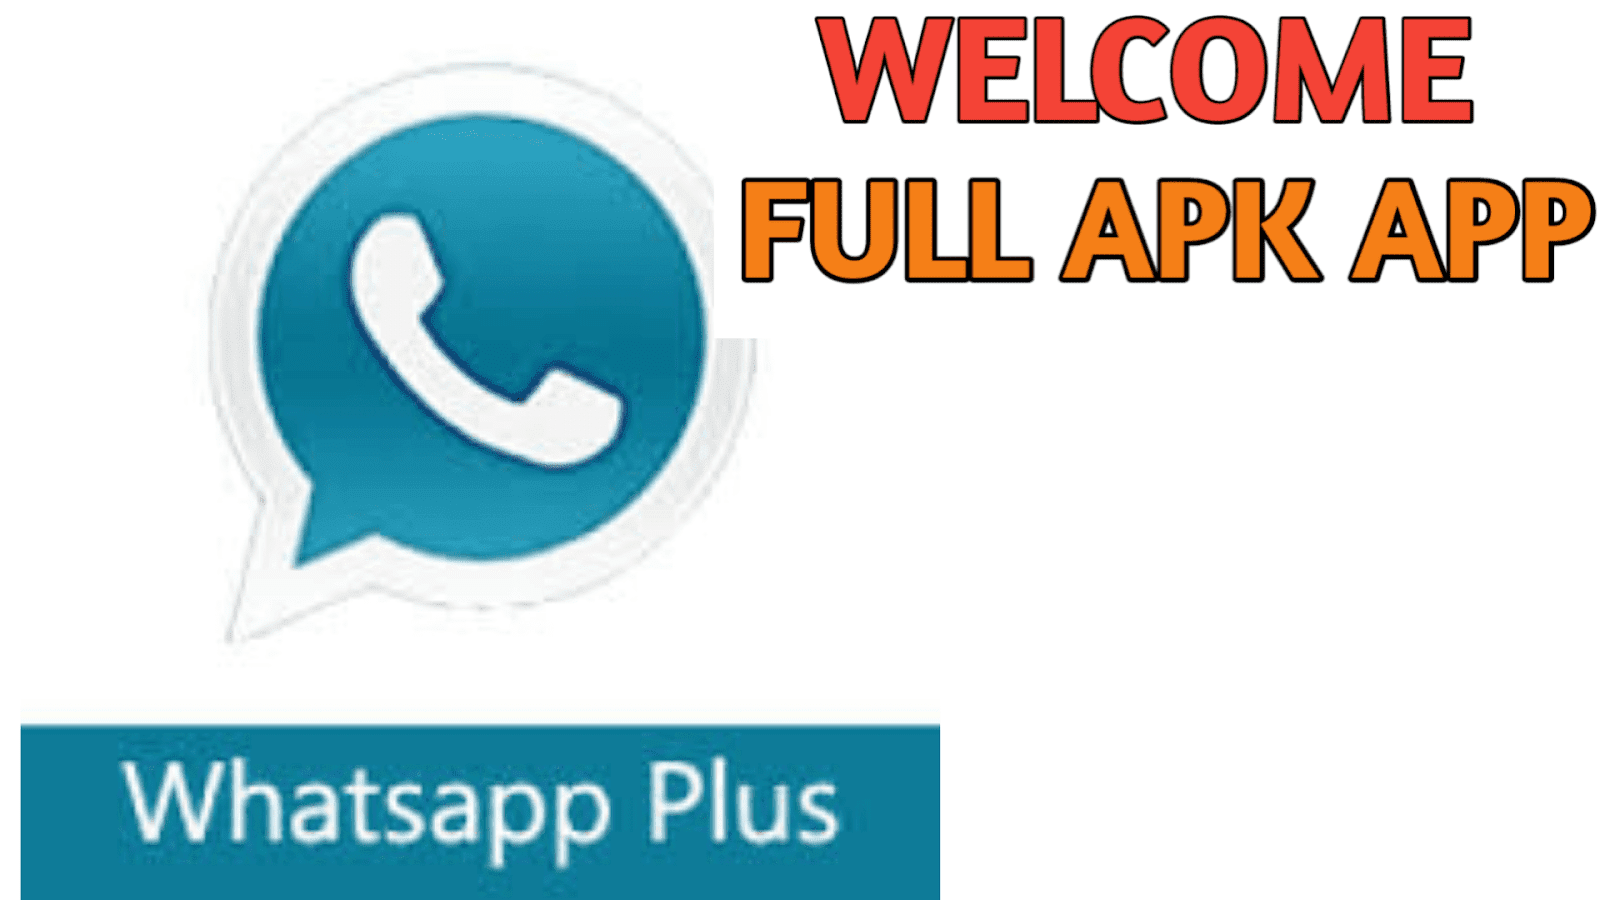 download the new app of whatsapp